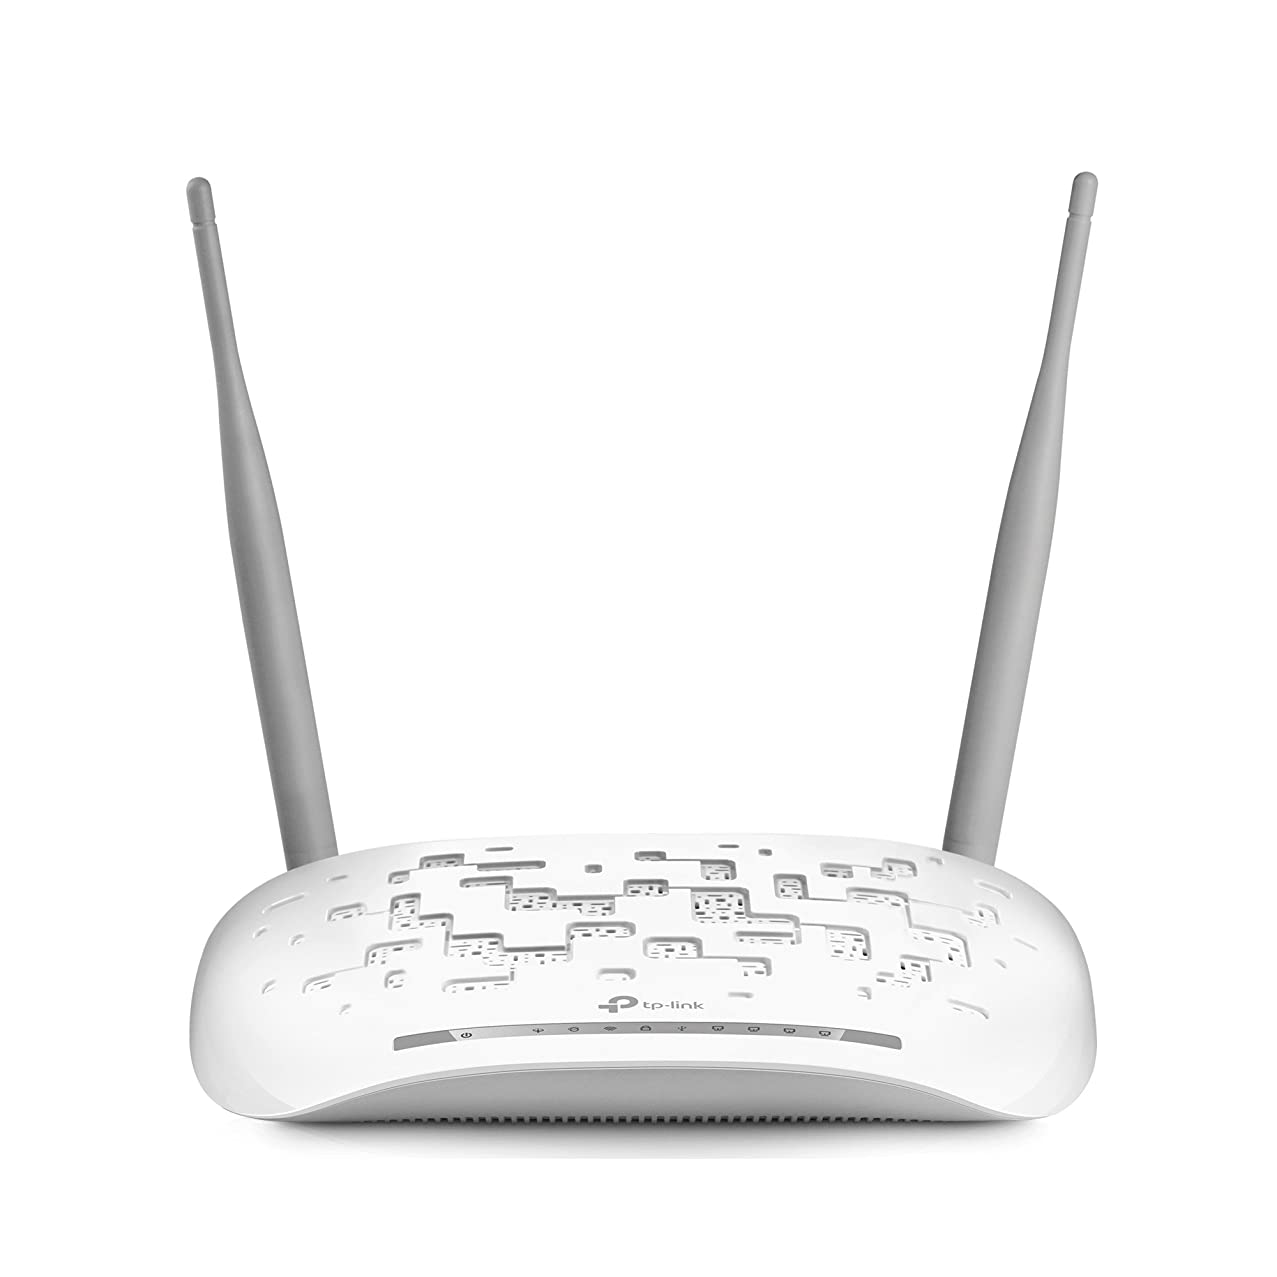 300Mbps Wireless N USB VDSL2 Modem Router